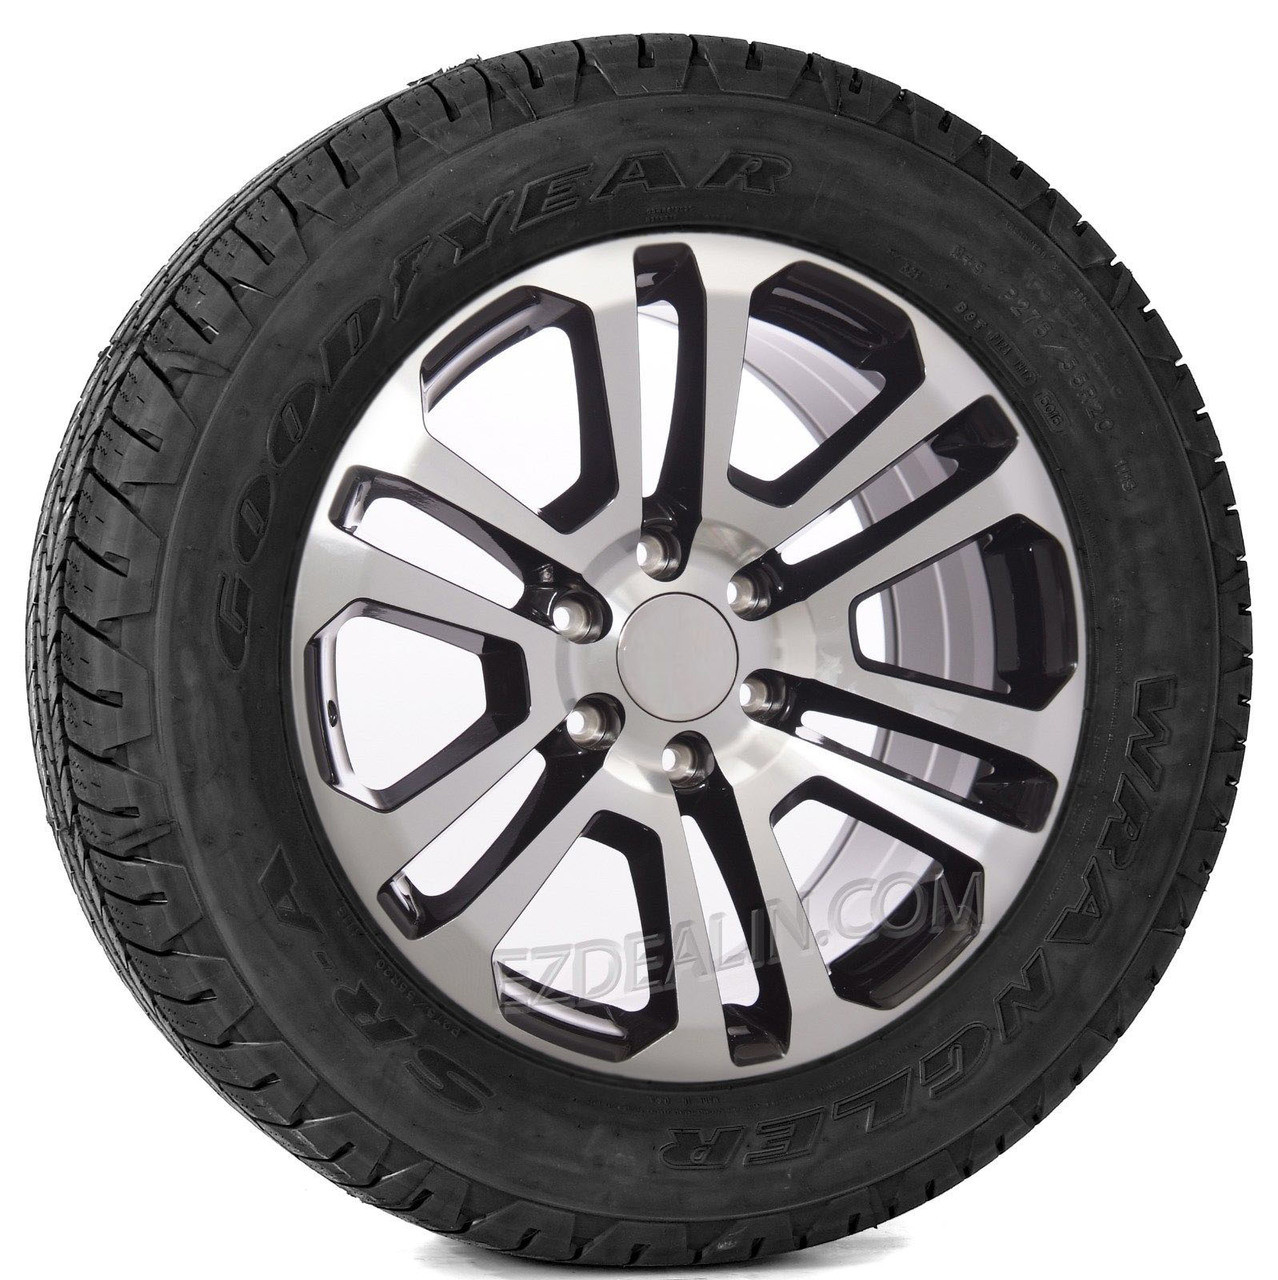 """Black and Machine 20"""" Split Spoke Wheels with Goodyear Tires for Chevy Silverado, Tahoe, Suburban - New Set of 4"""